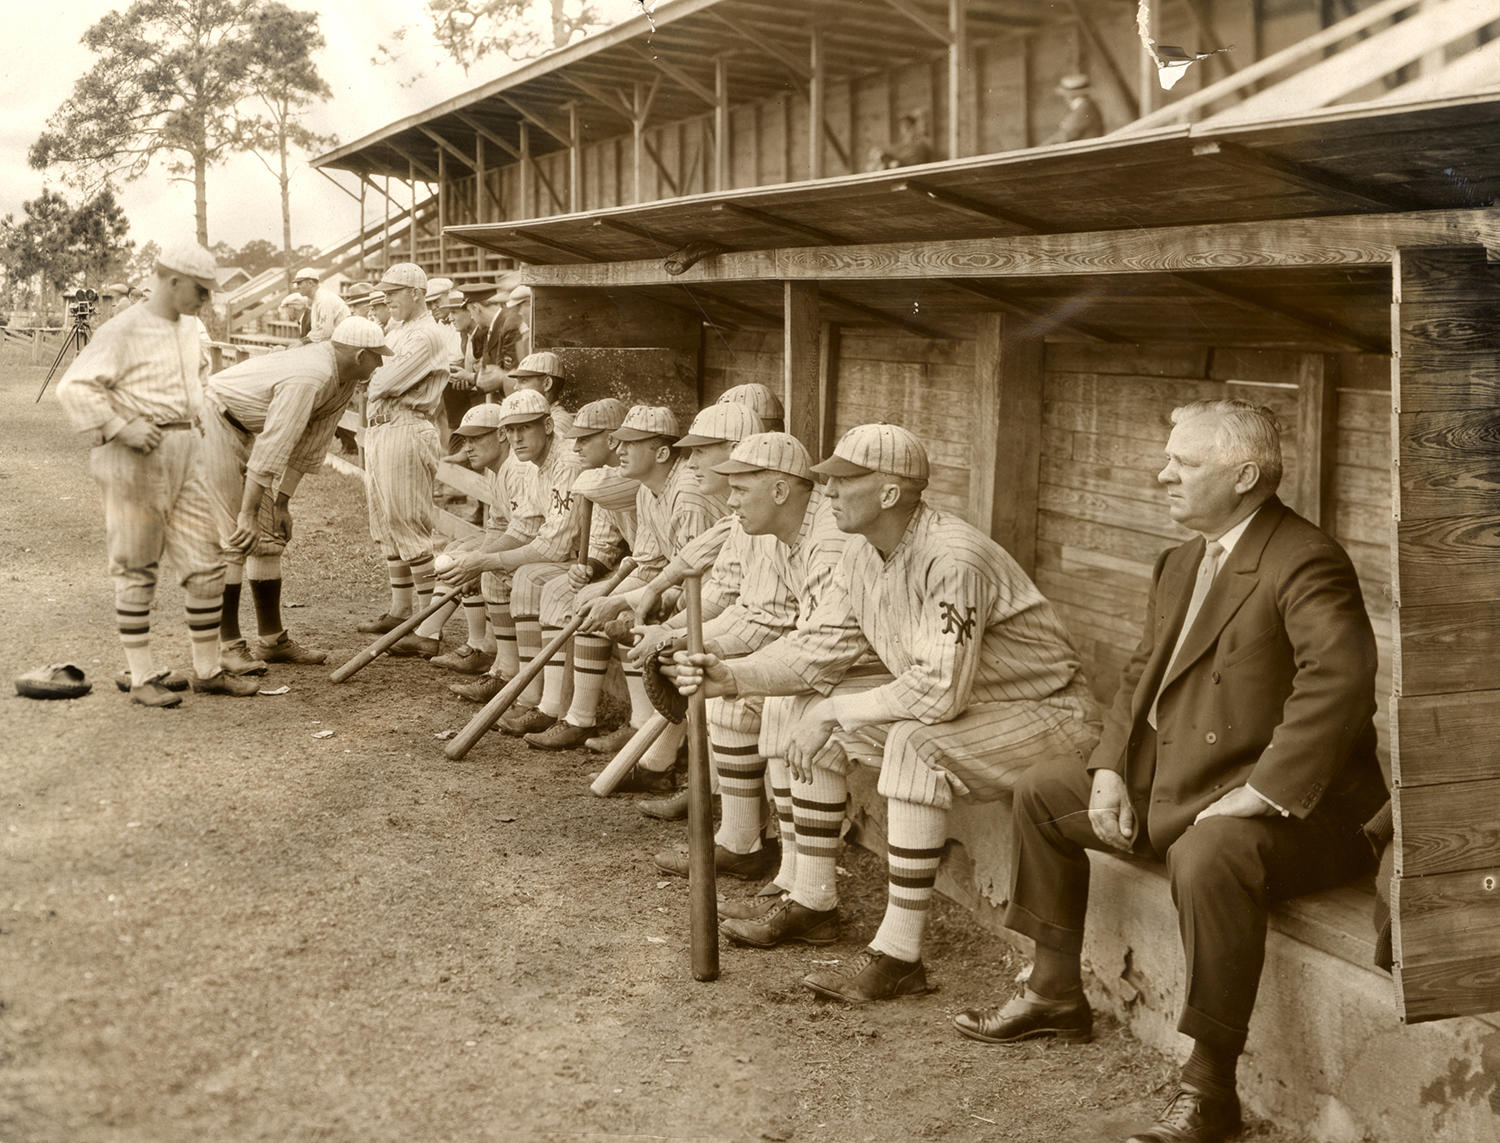 John McGraw (far right) brought his New York Giants to his hometown of Truxton, N.Y. multiple times to raise money for the town. (National Baseball Hall of Fame)